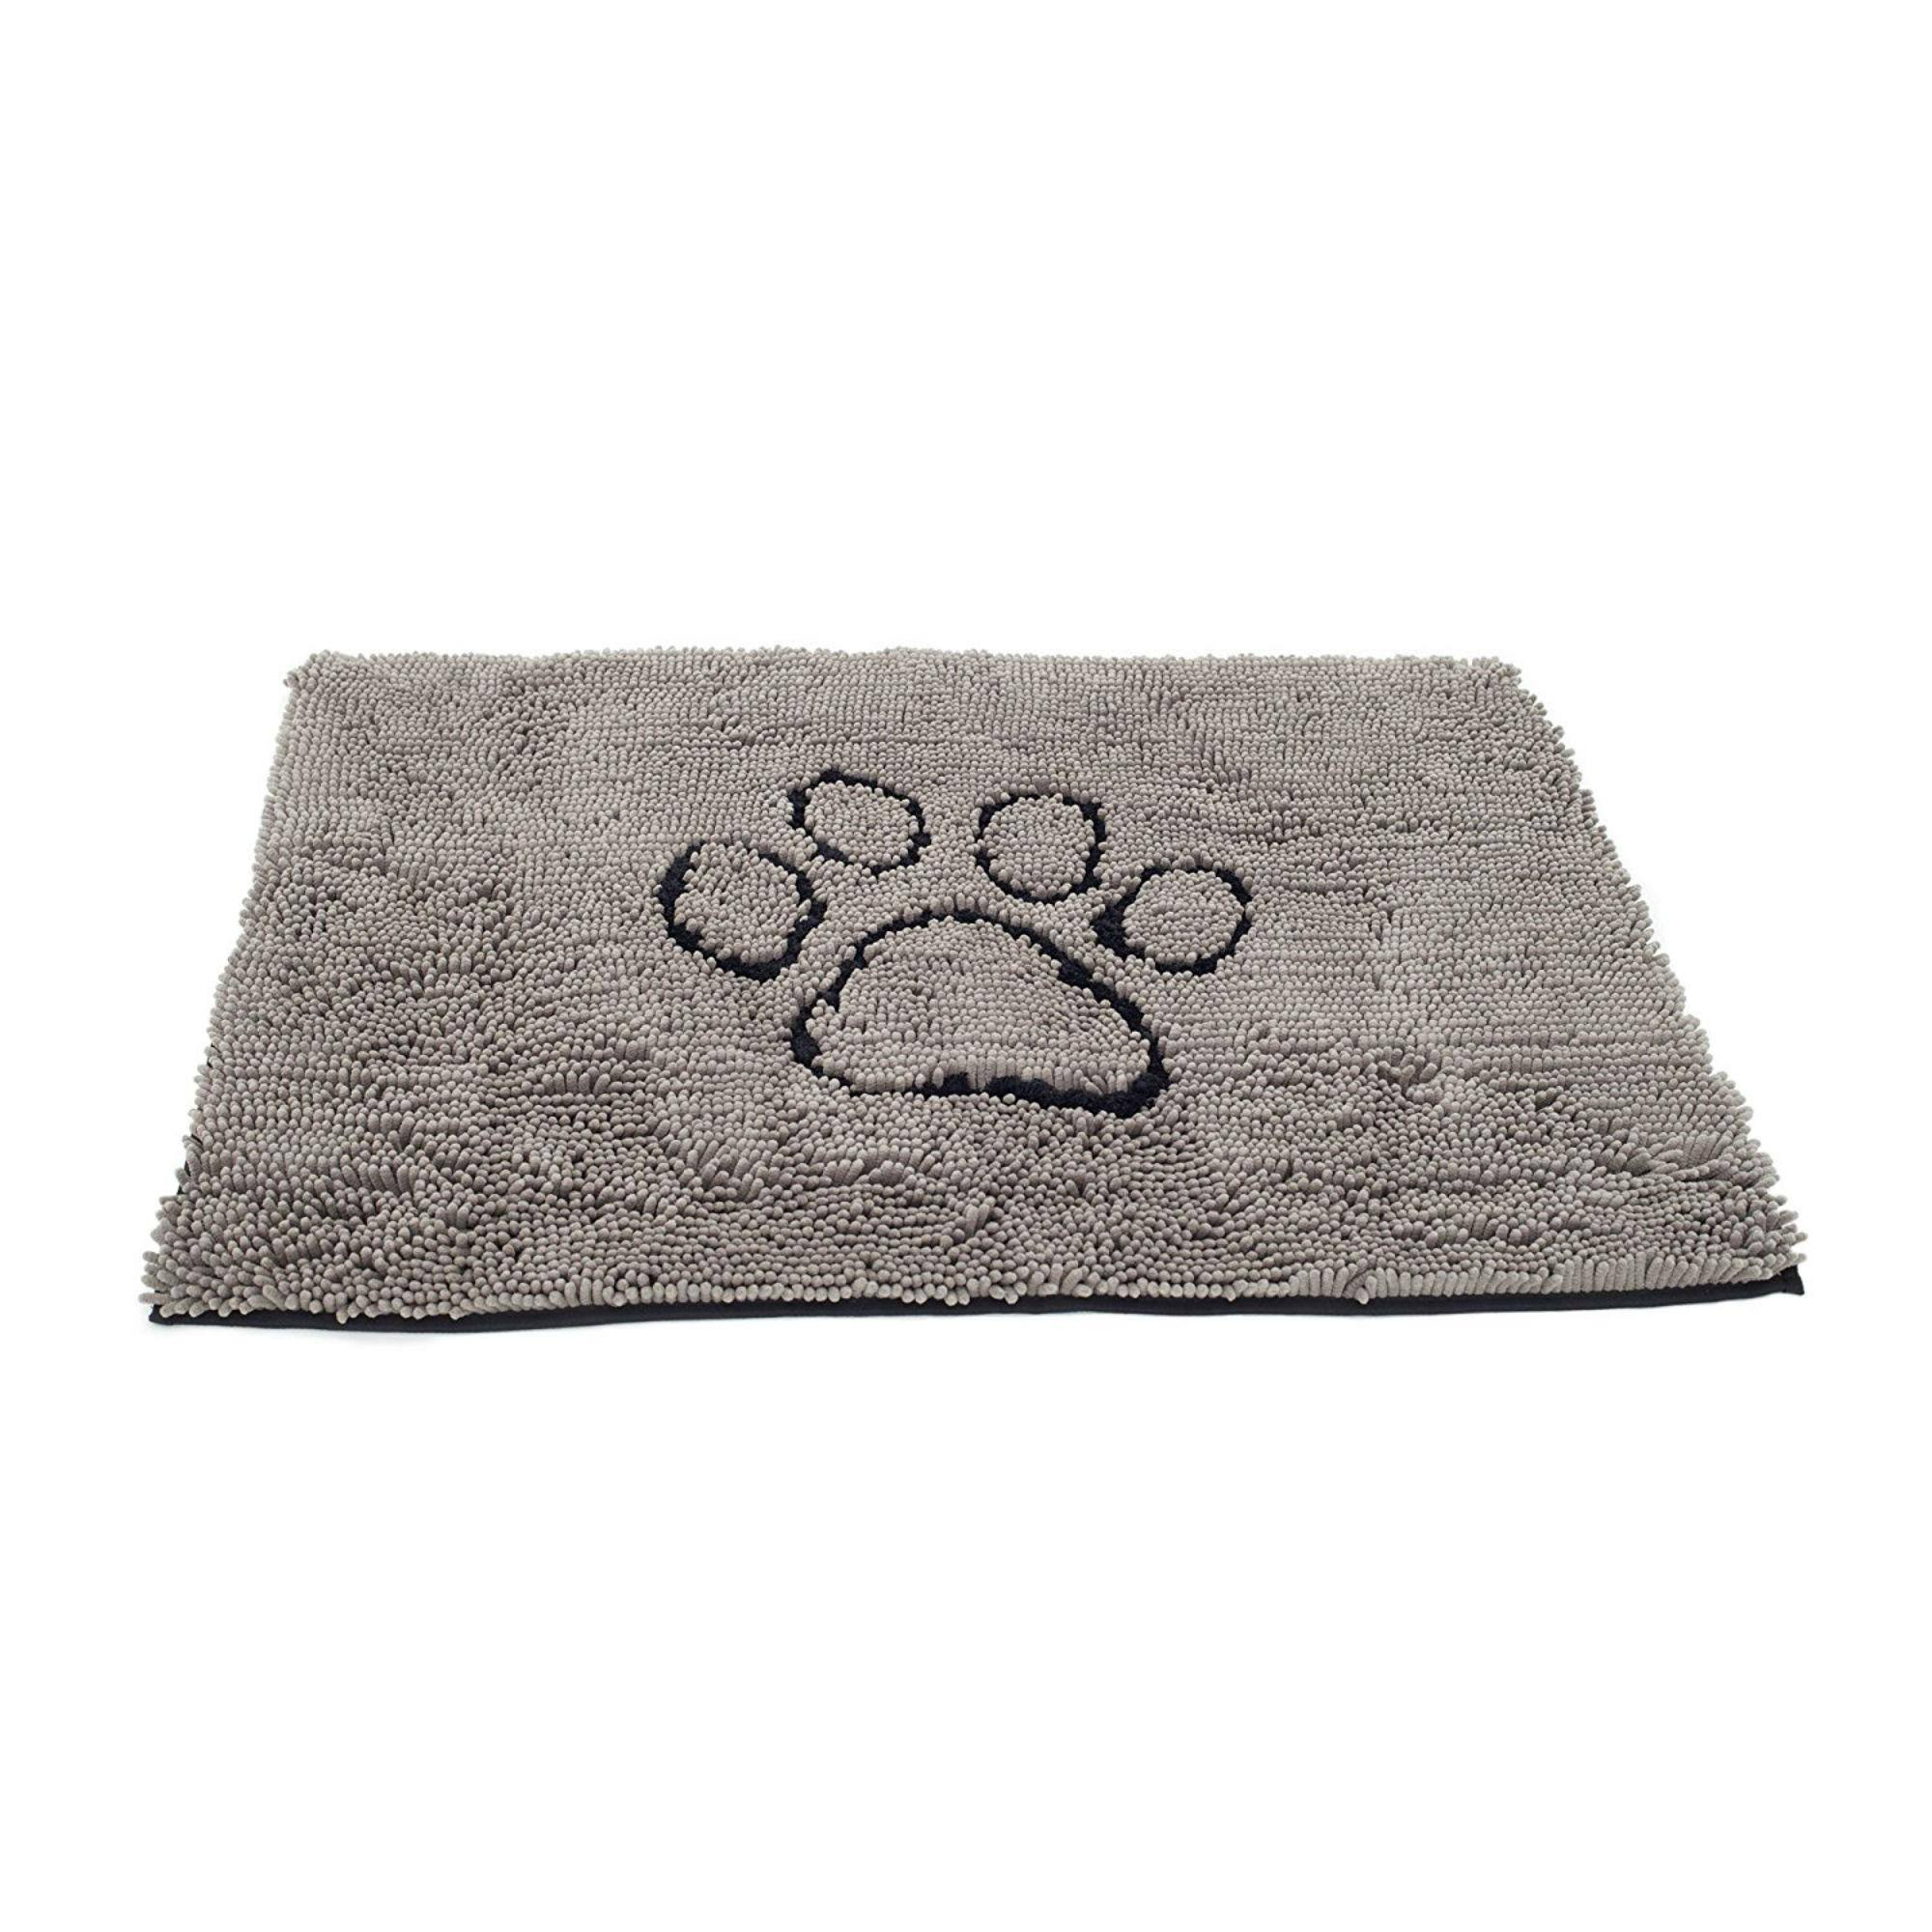 Dog Gone Smart Large Dirty Doormat